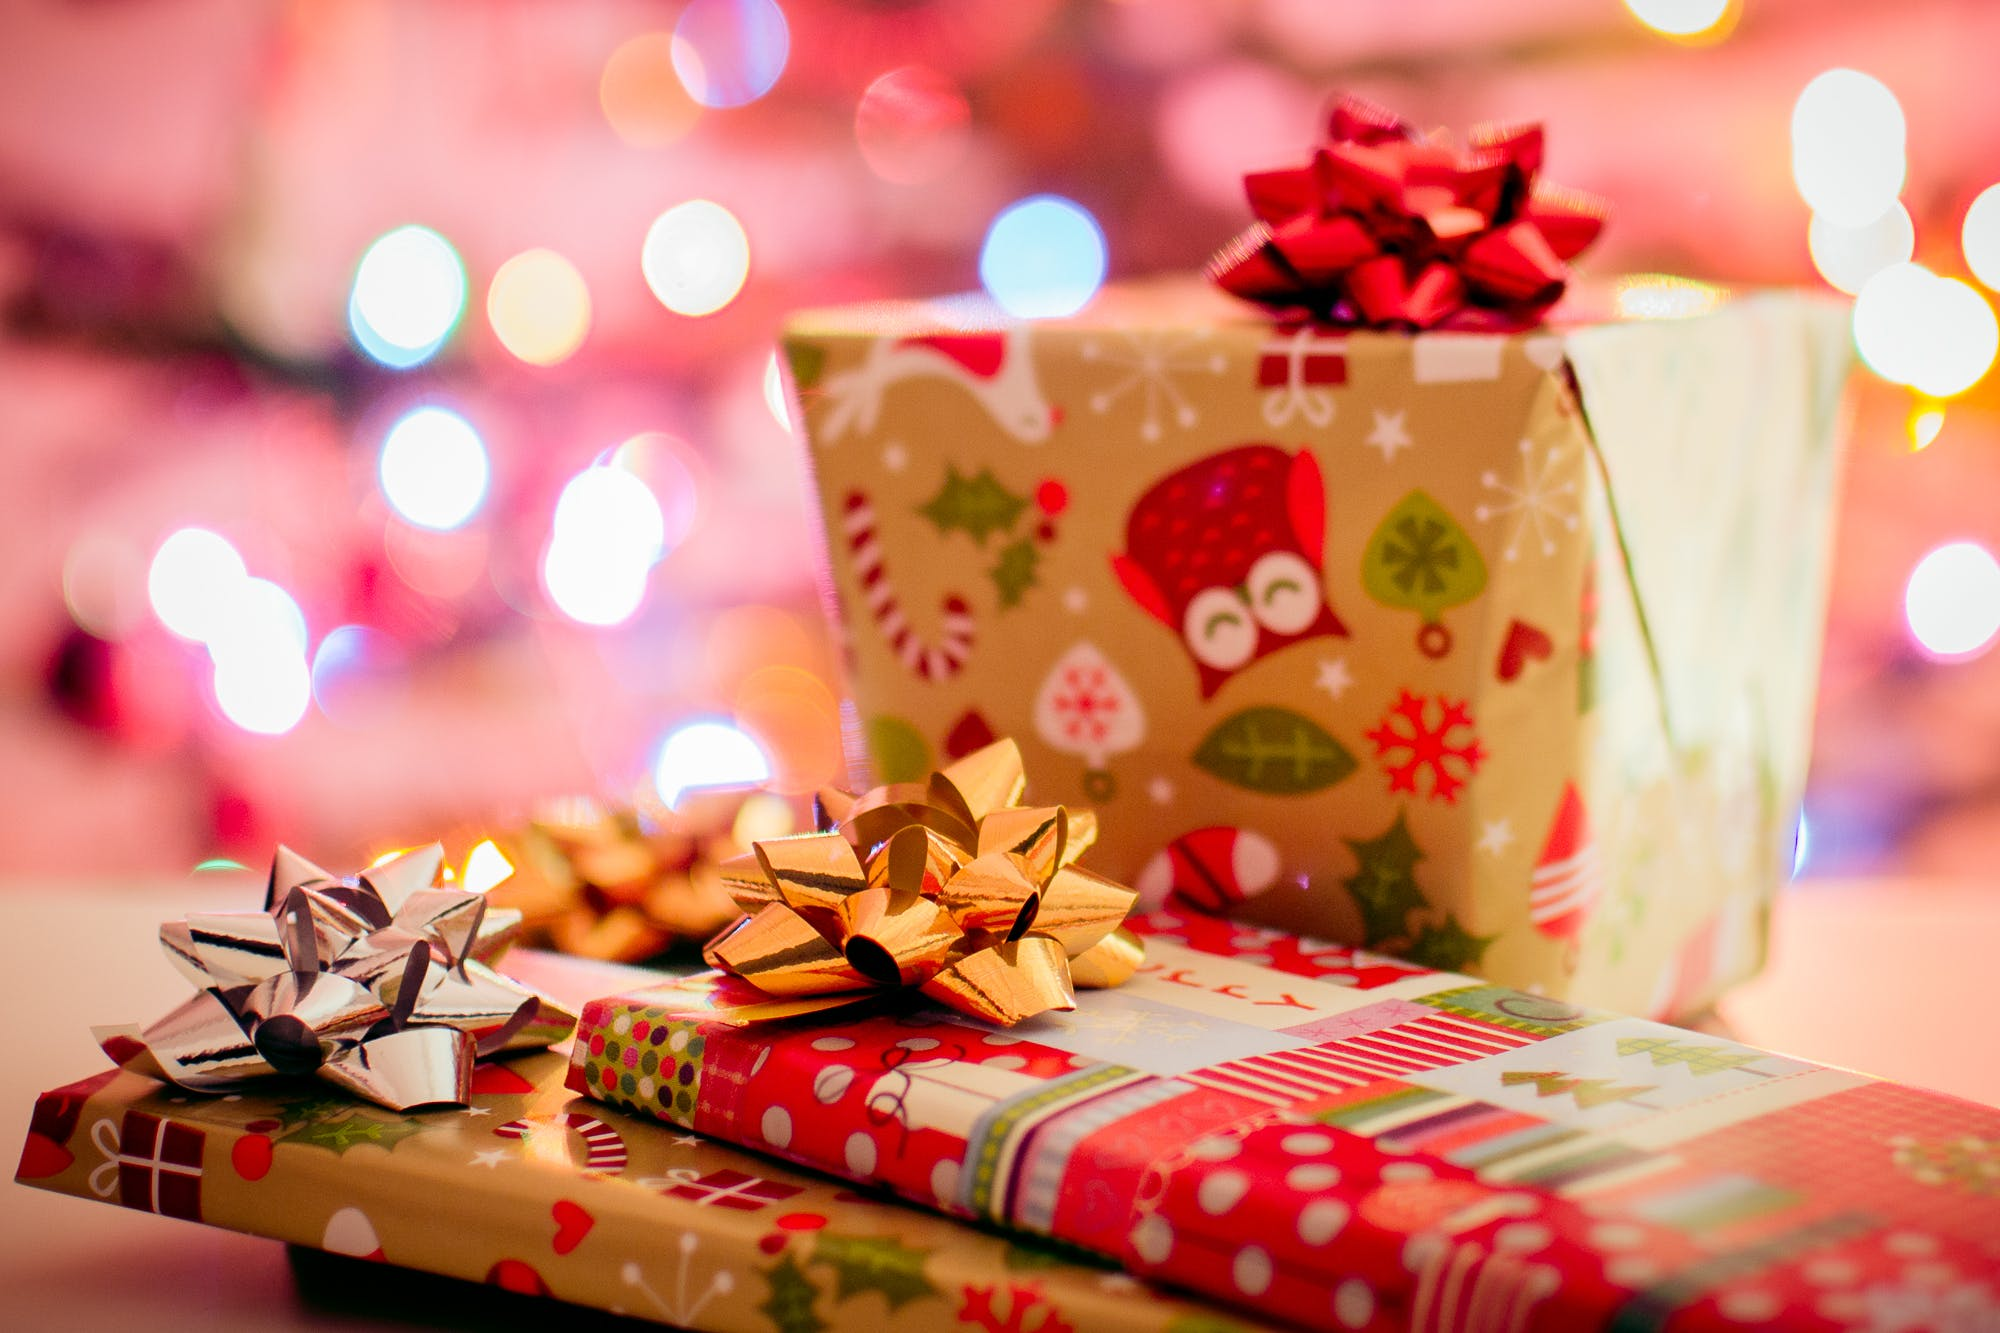 Free stock photo of christmas, xmas, surprise, gifts